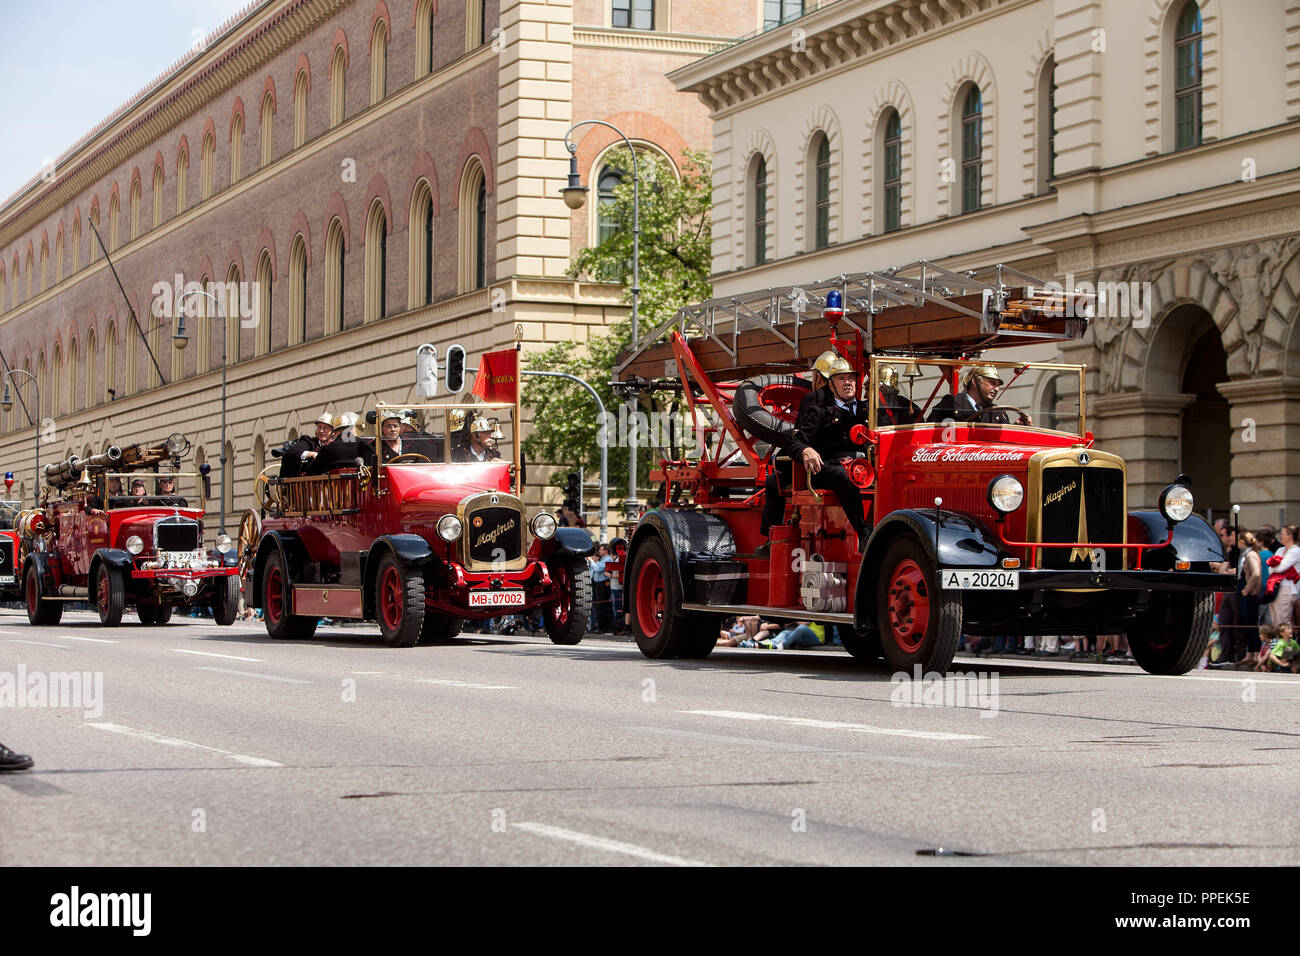 The world's largest parade of fire trucks in the Ludwigstrasse on the 150th anniversary of the Volunteer Fire Department Munich. - Stock Image